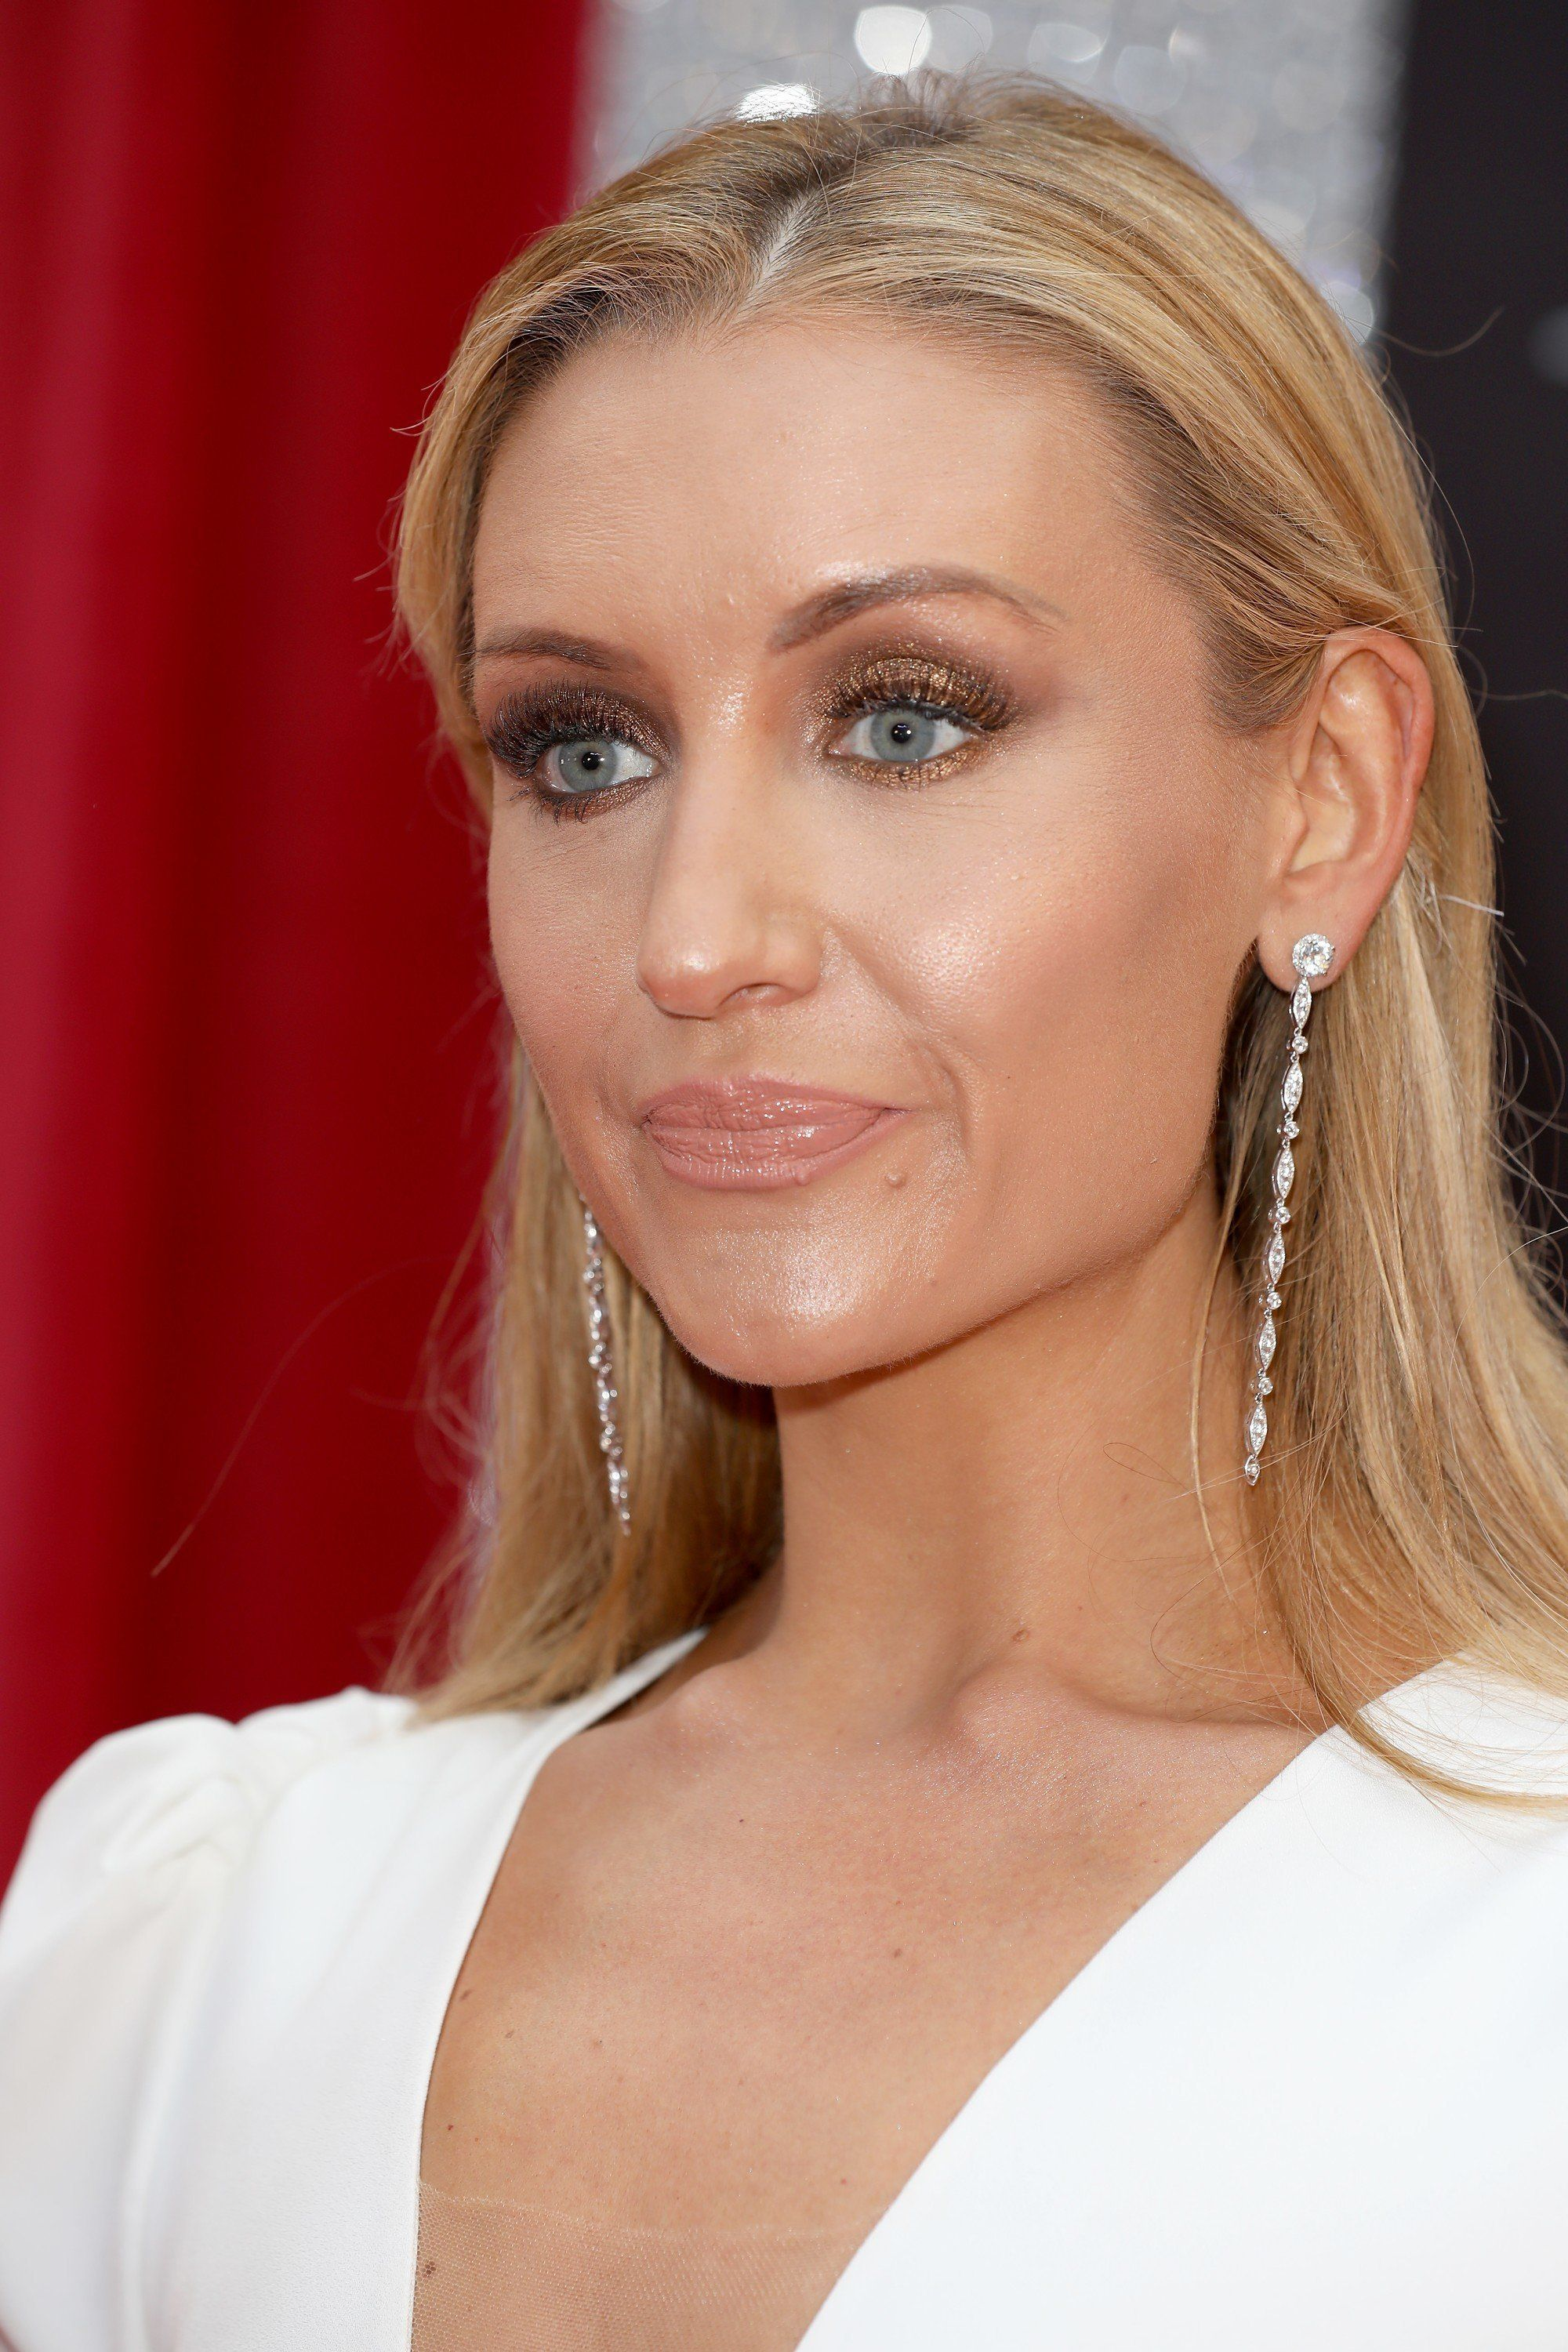 Coronation Street's Cath Tyldesley Has The Perfect Response For Man Who Body-Shamed